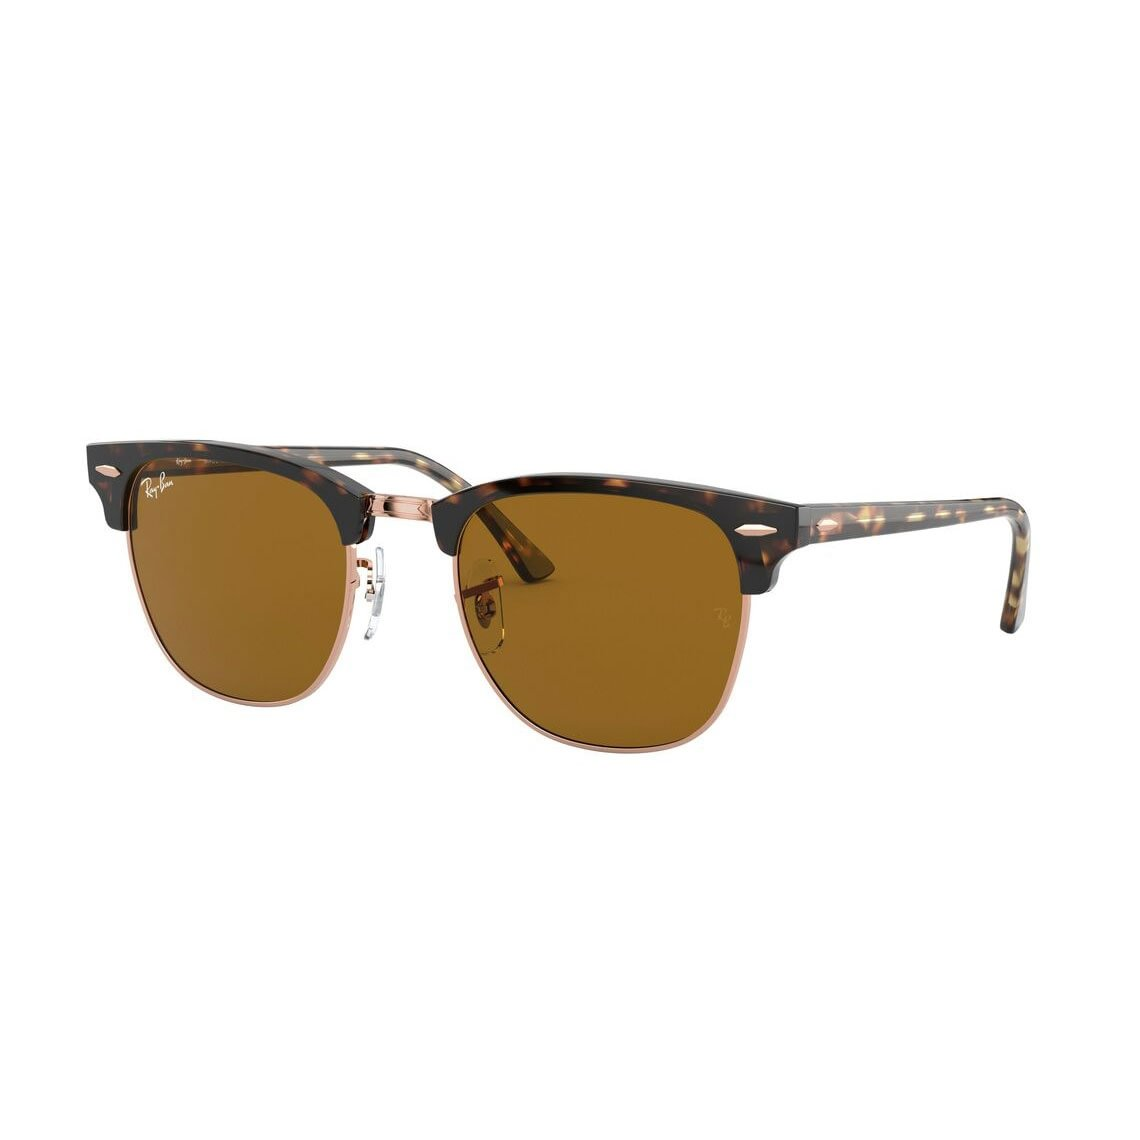 Ray-Ban Clubmaster RB3016 130933 51